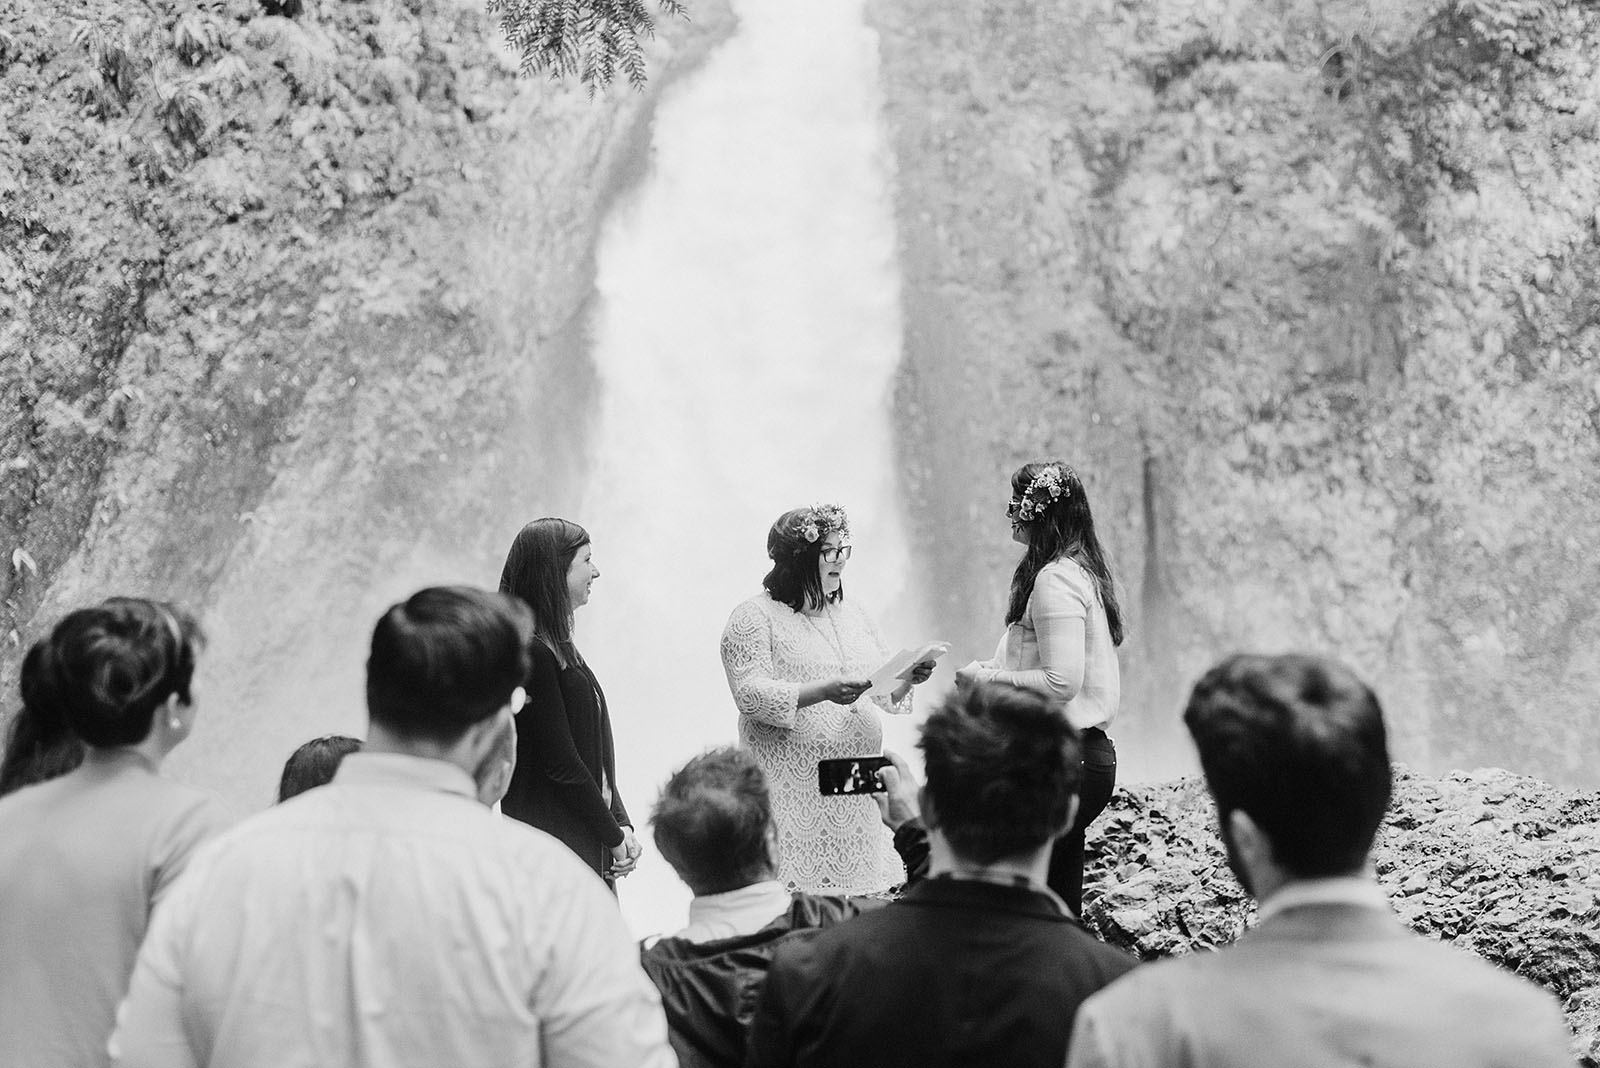 Wedding guests gathered around for the ceremony at a Portland waterfall elopement